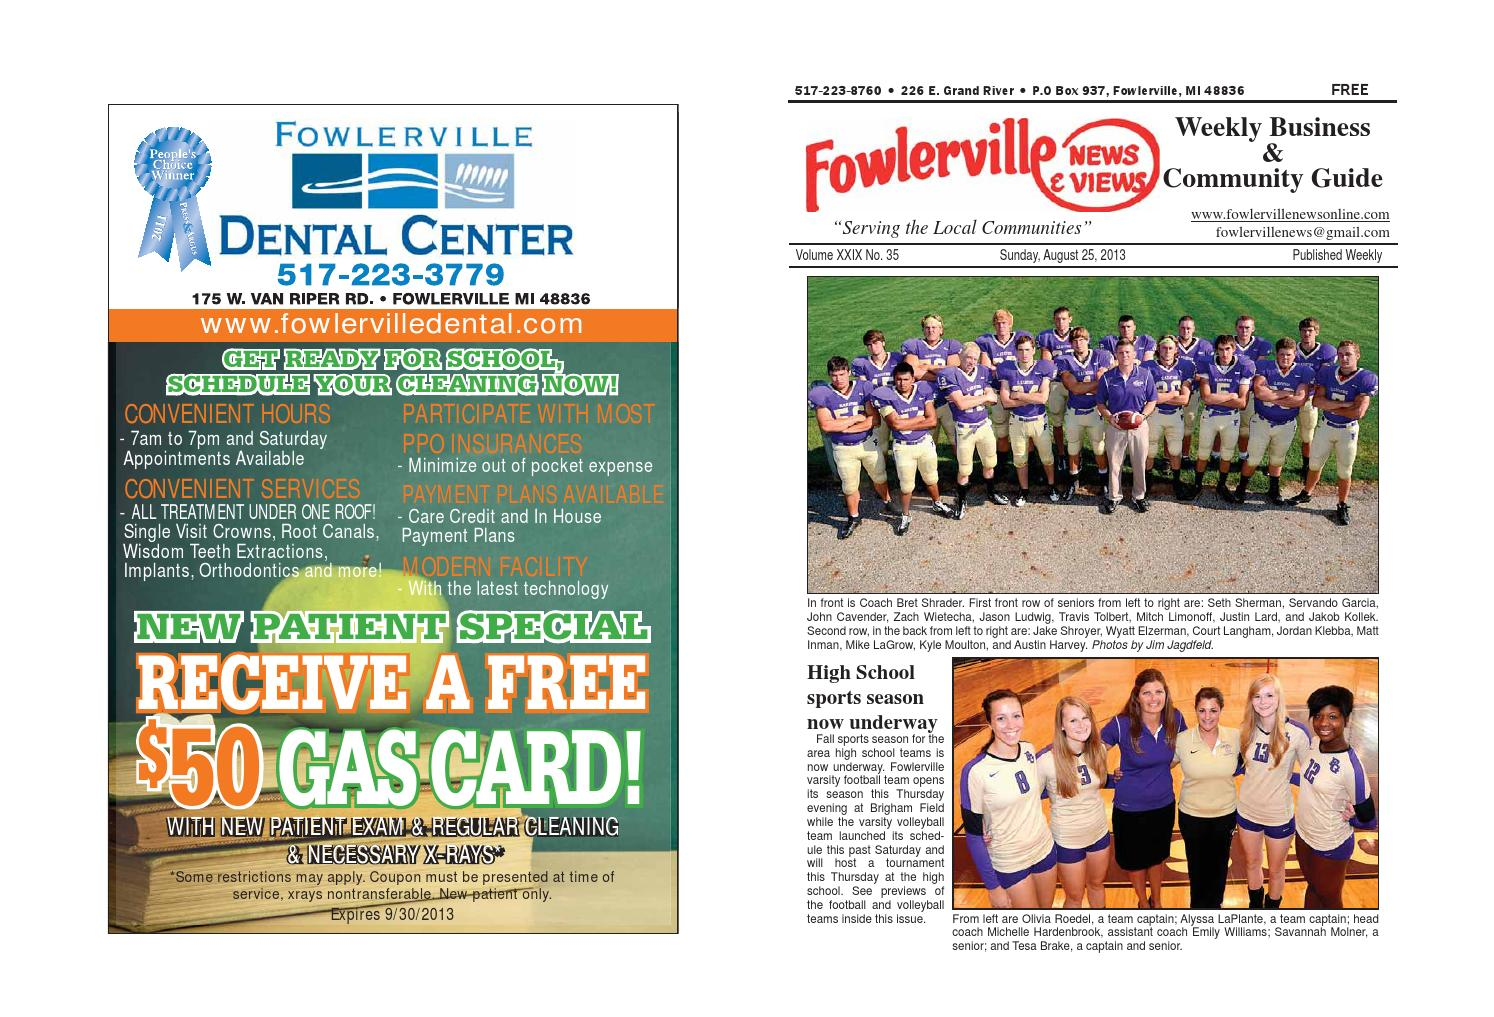 Fowlerville news and views by steve horton issuu fandeluxe Gallery